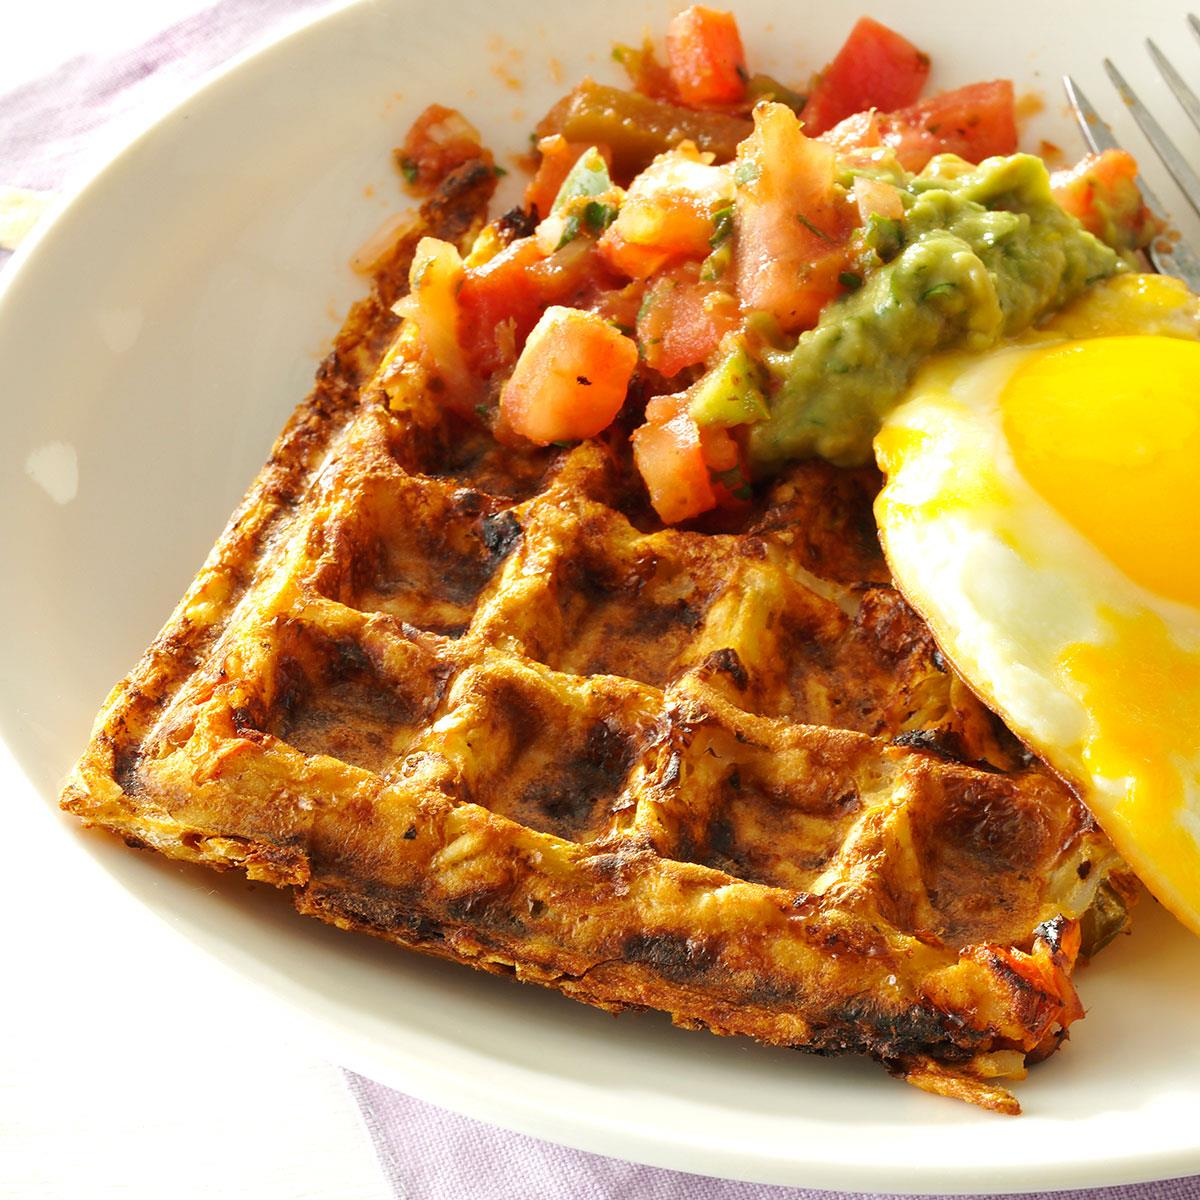 Hash Brown Waffles; How to Make Hash Browns with a Waffle Iron